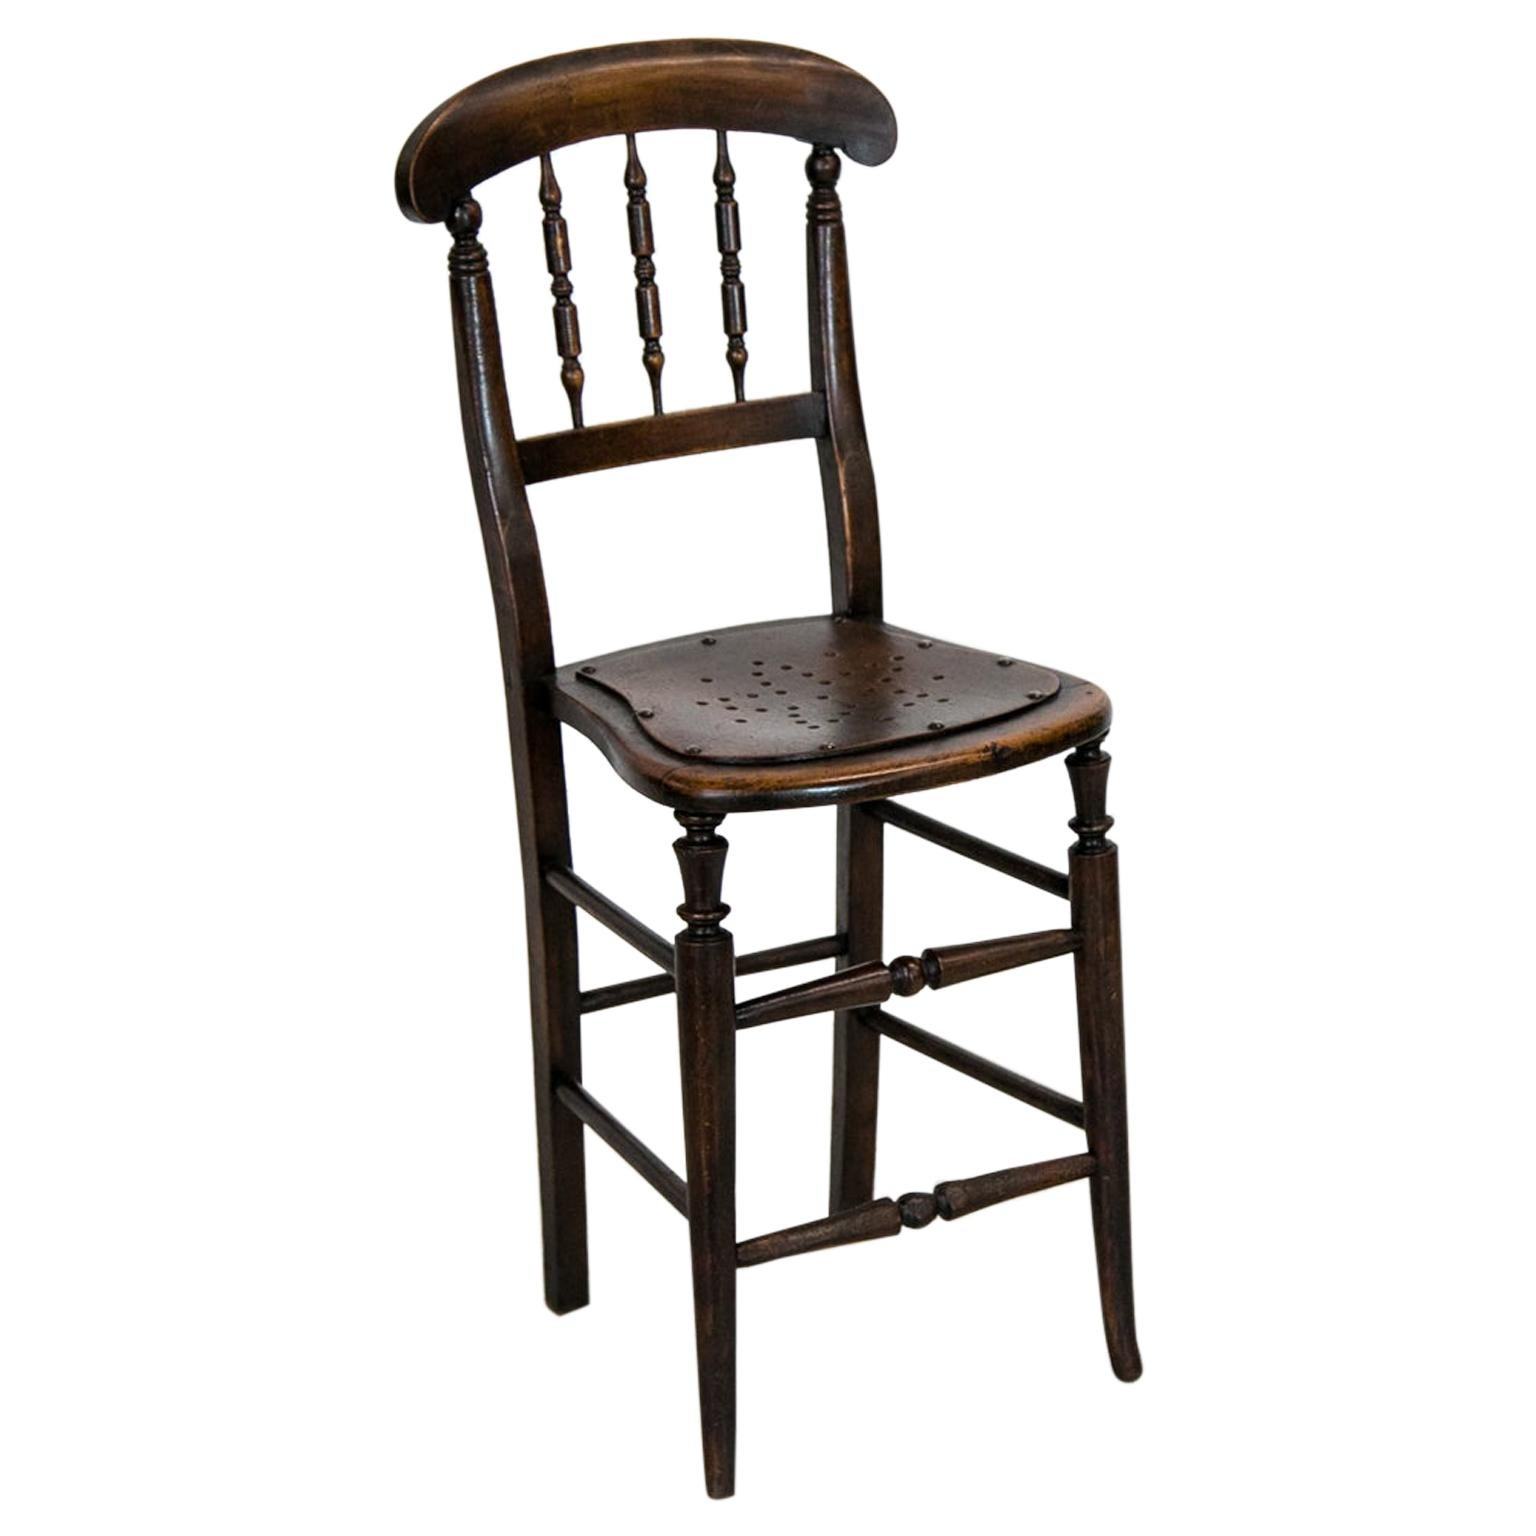 English Child's, Chair